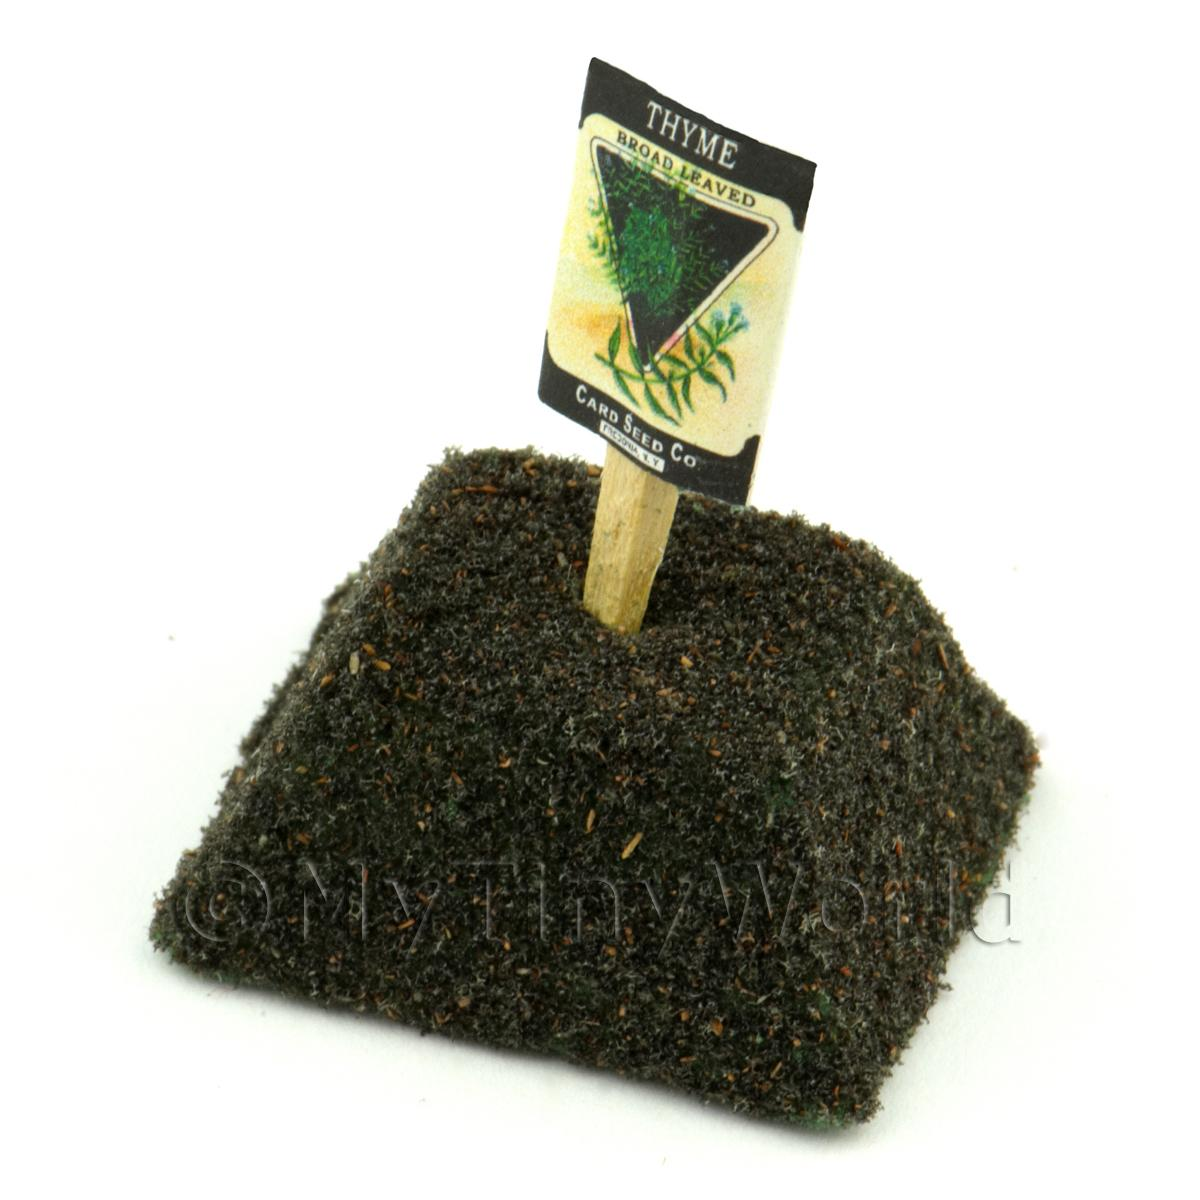 Dolls House Miniature Thyme Seed Packet With A Stick